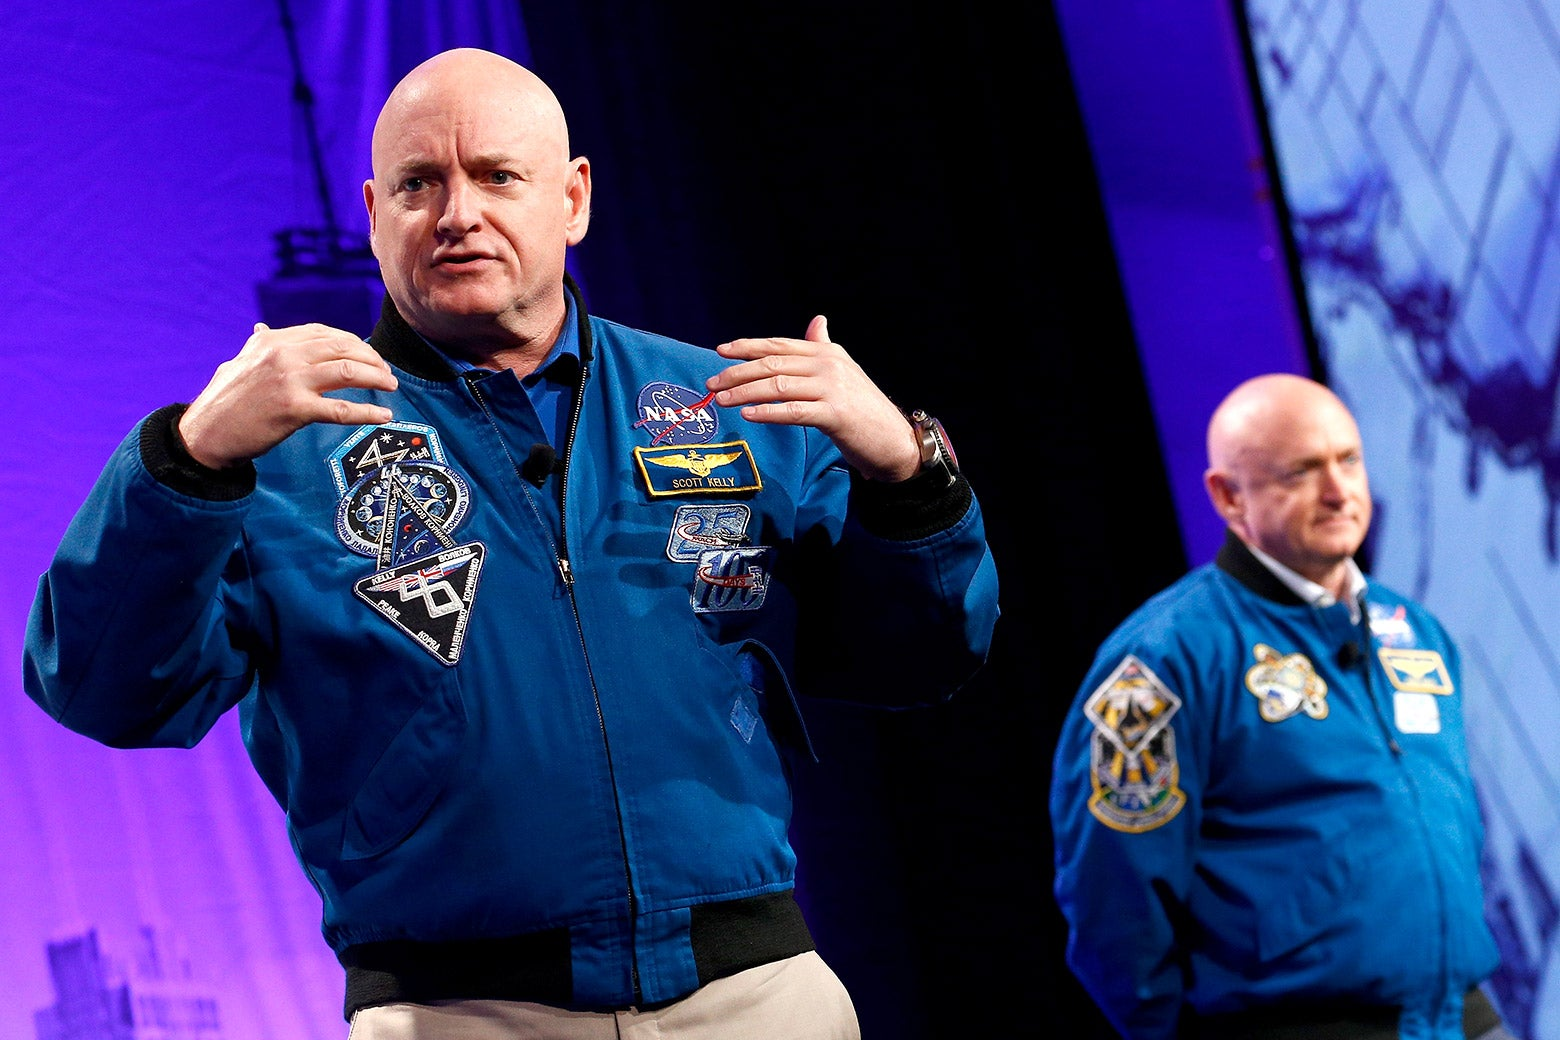 Astronauts Capt. Scott Kelly and Capt. Mark Kelly speak onstage.